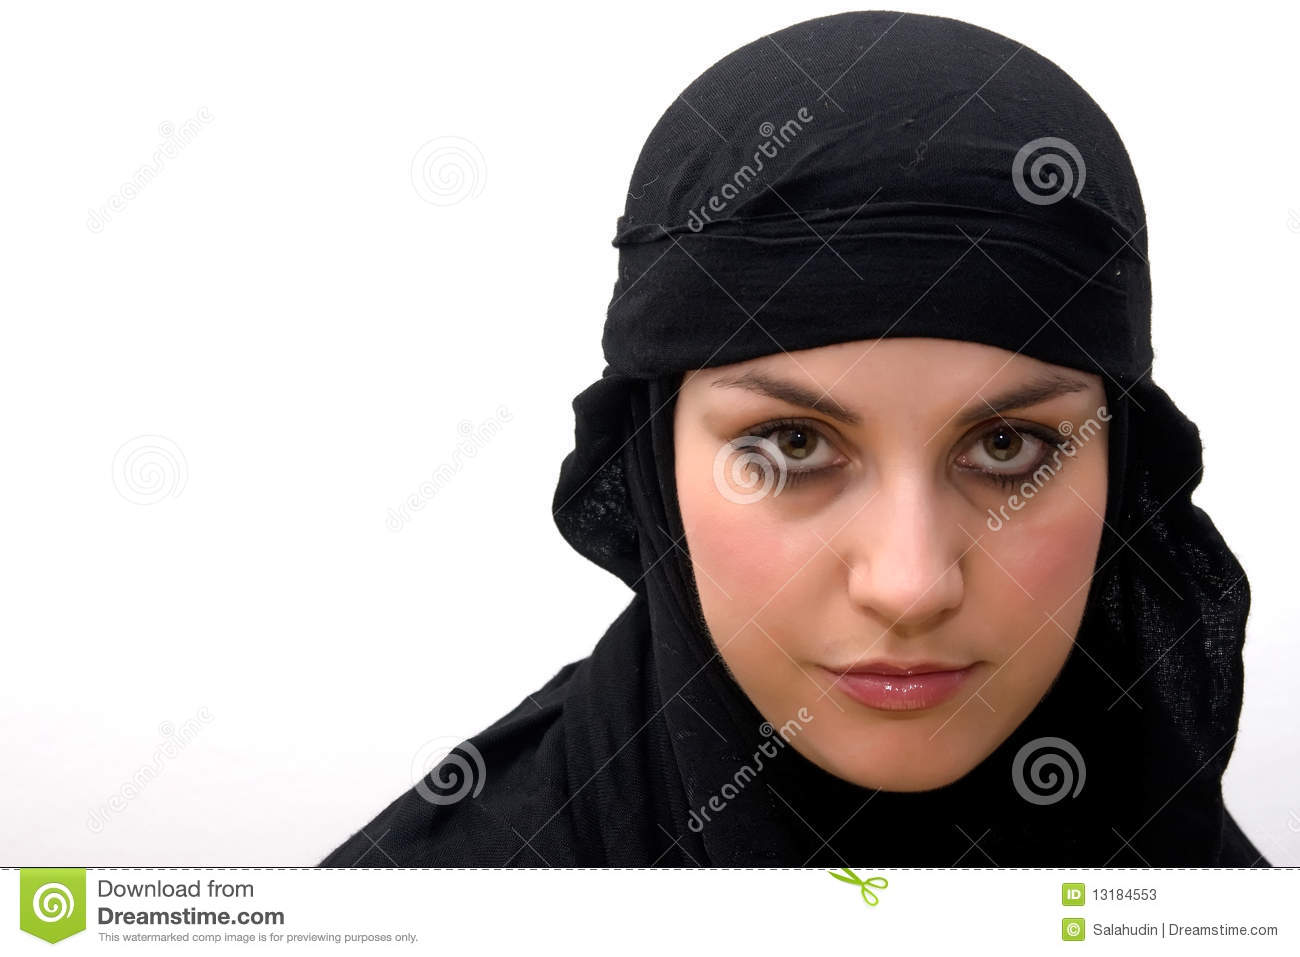 changshu single muslim girls Life after 30 as a single muslim woman the reality is that there are more single muslim women than males, and you should look for a guy who is loving and kind.